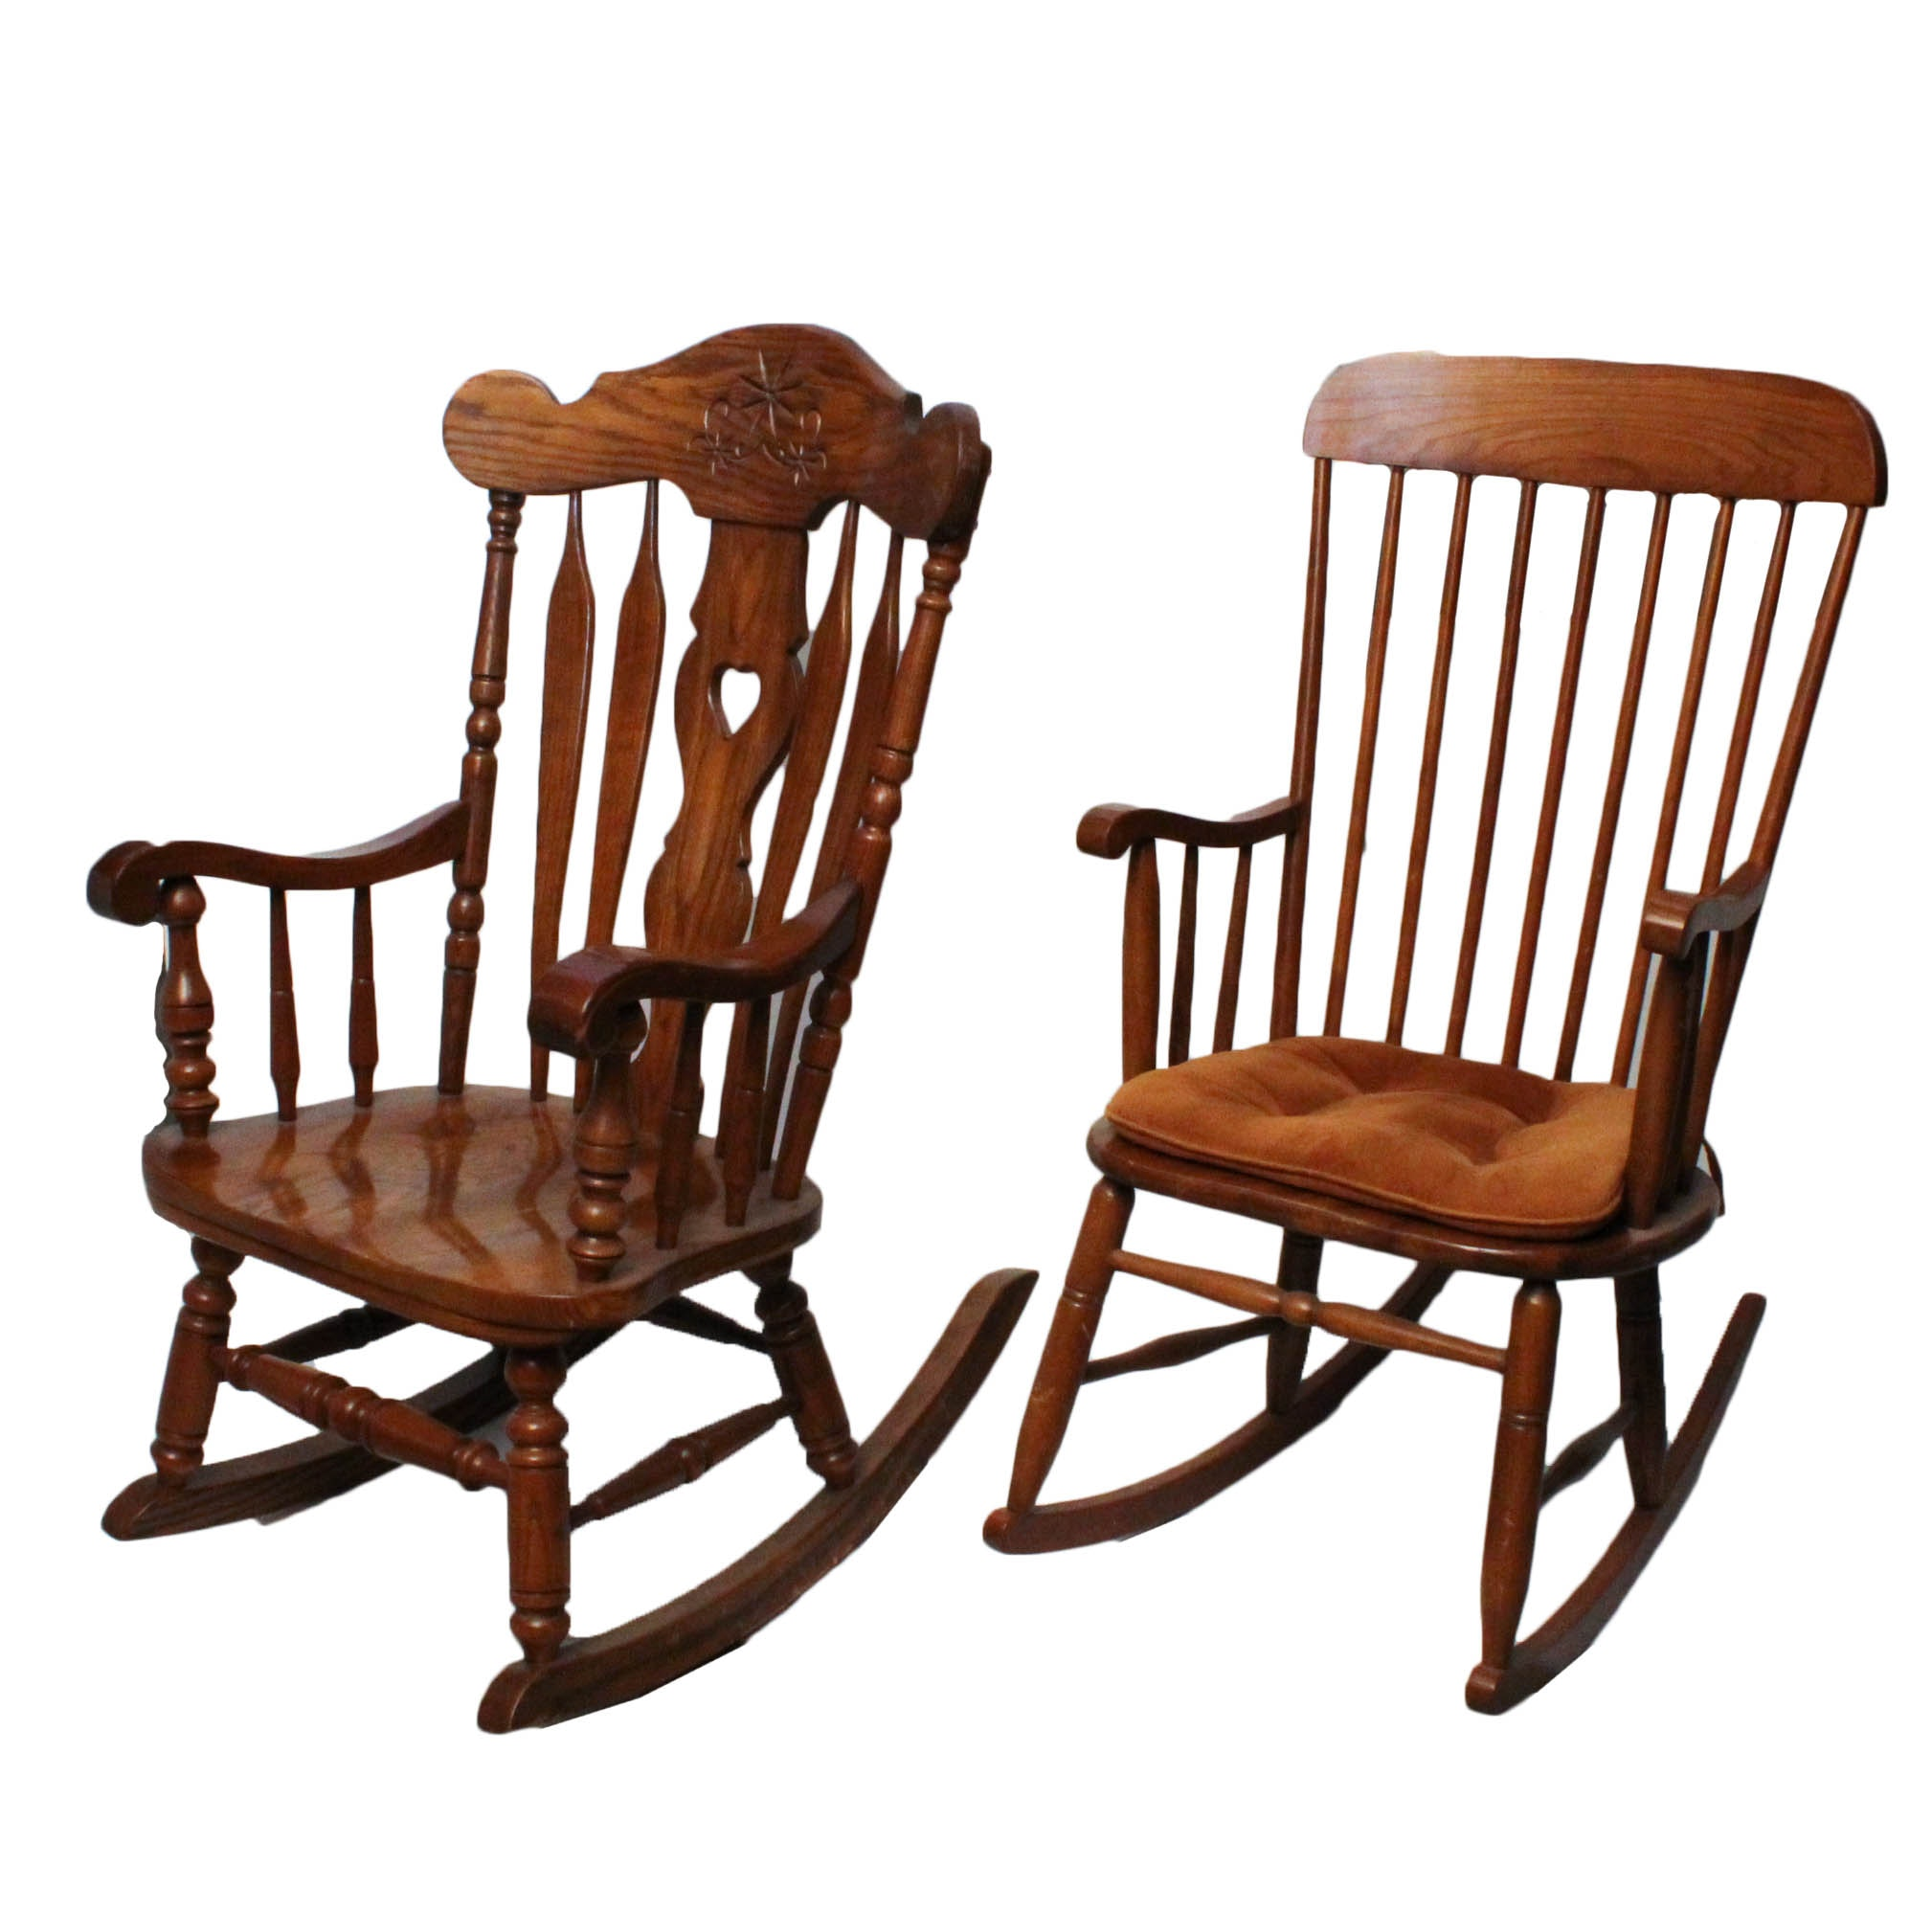 Solid Oak Rocking Chairs